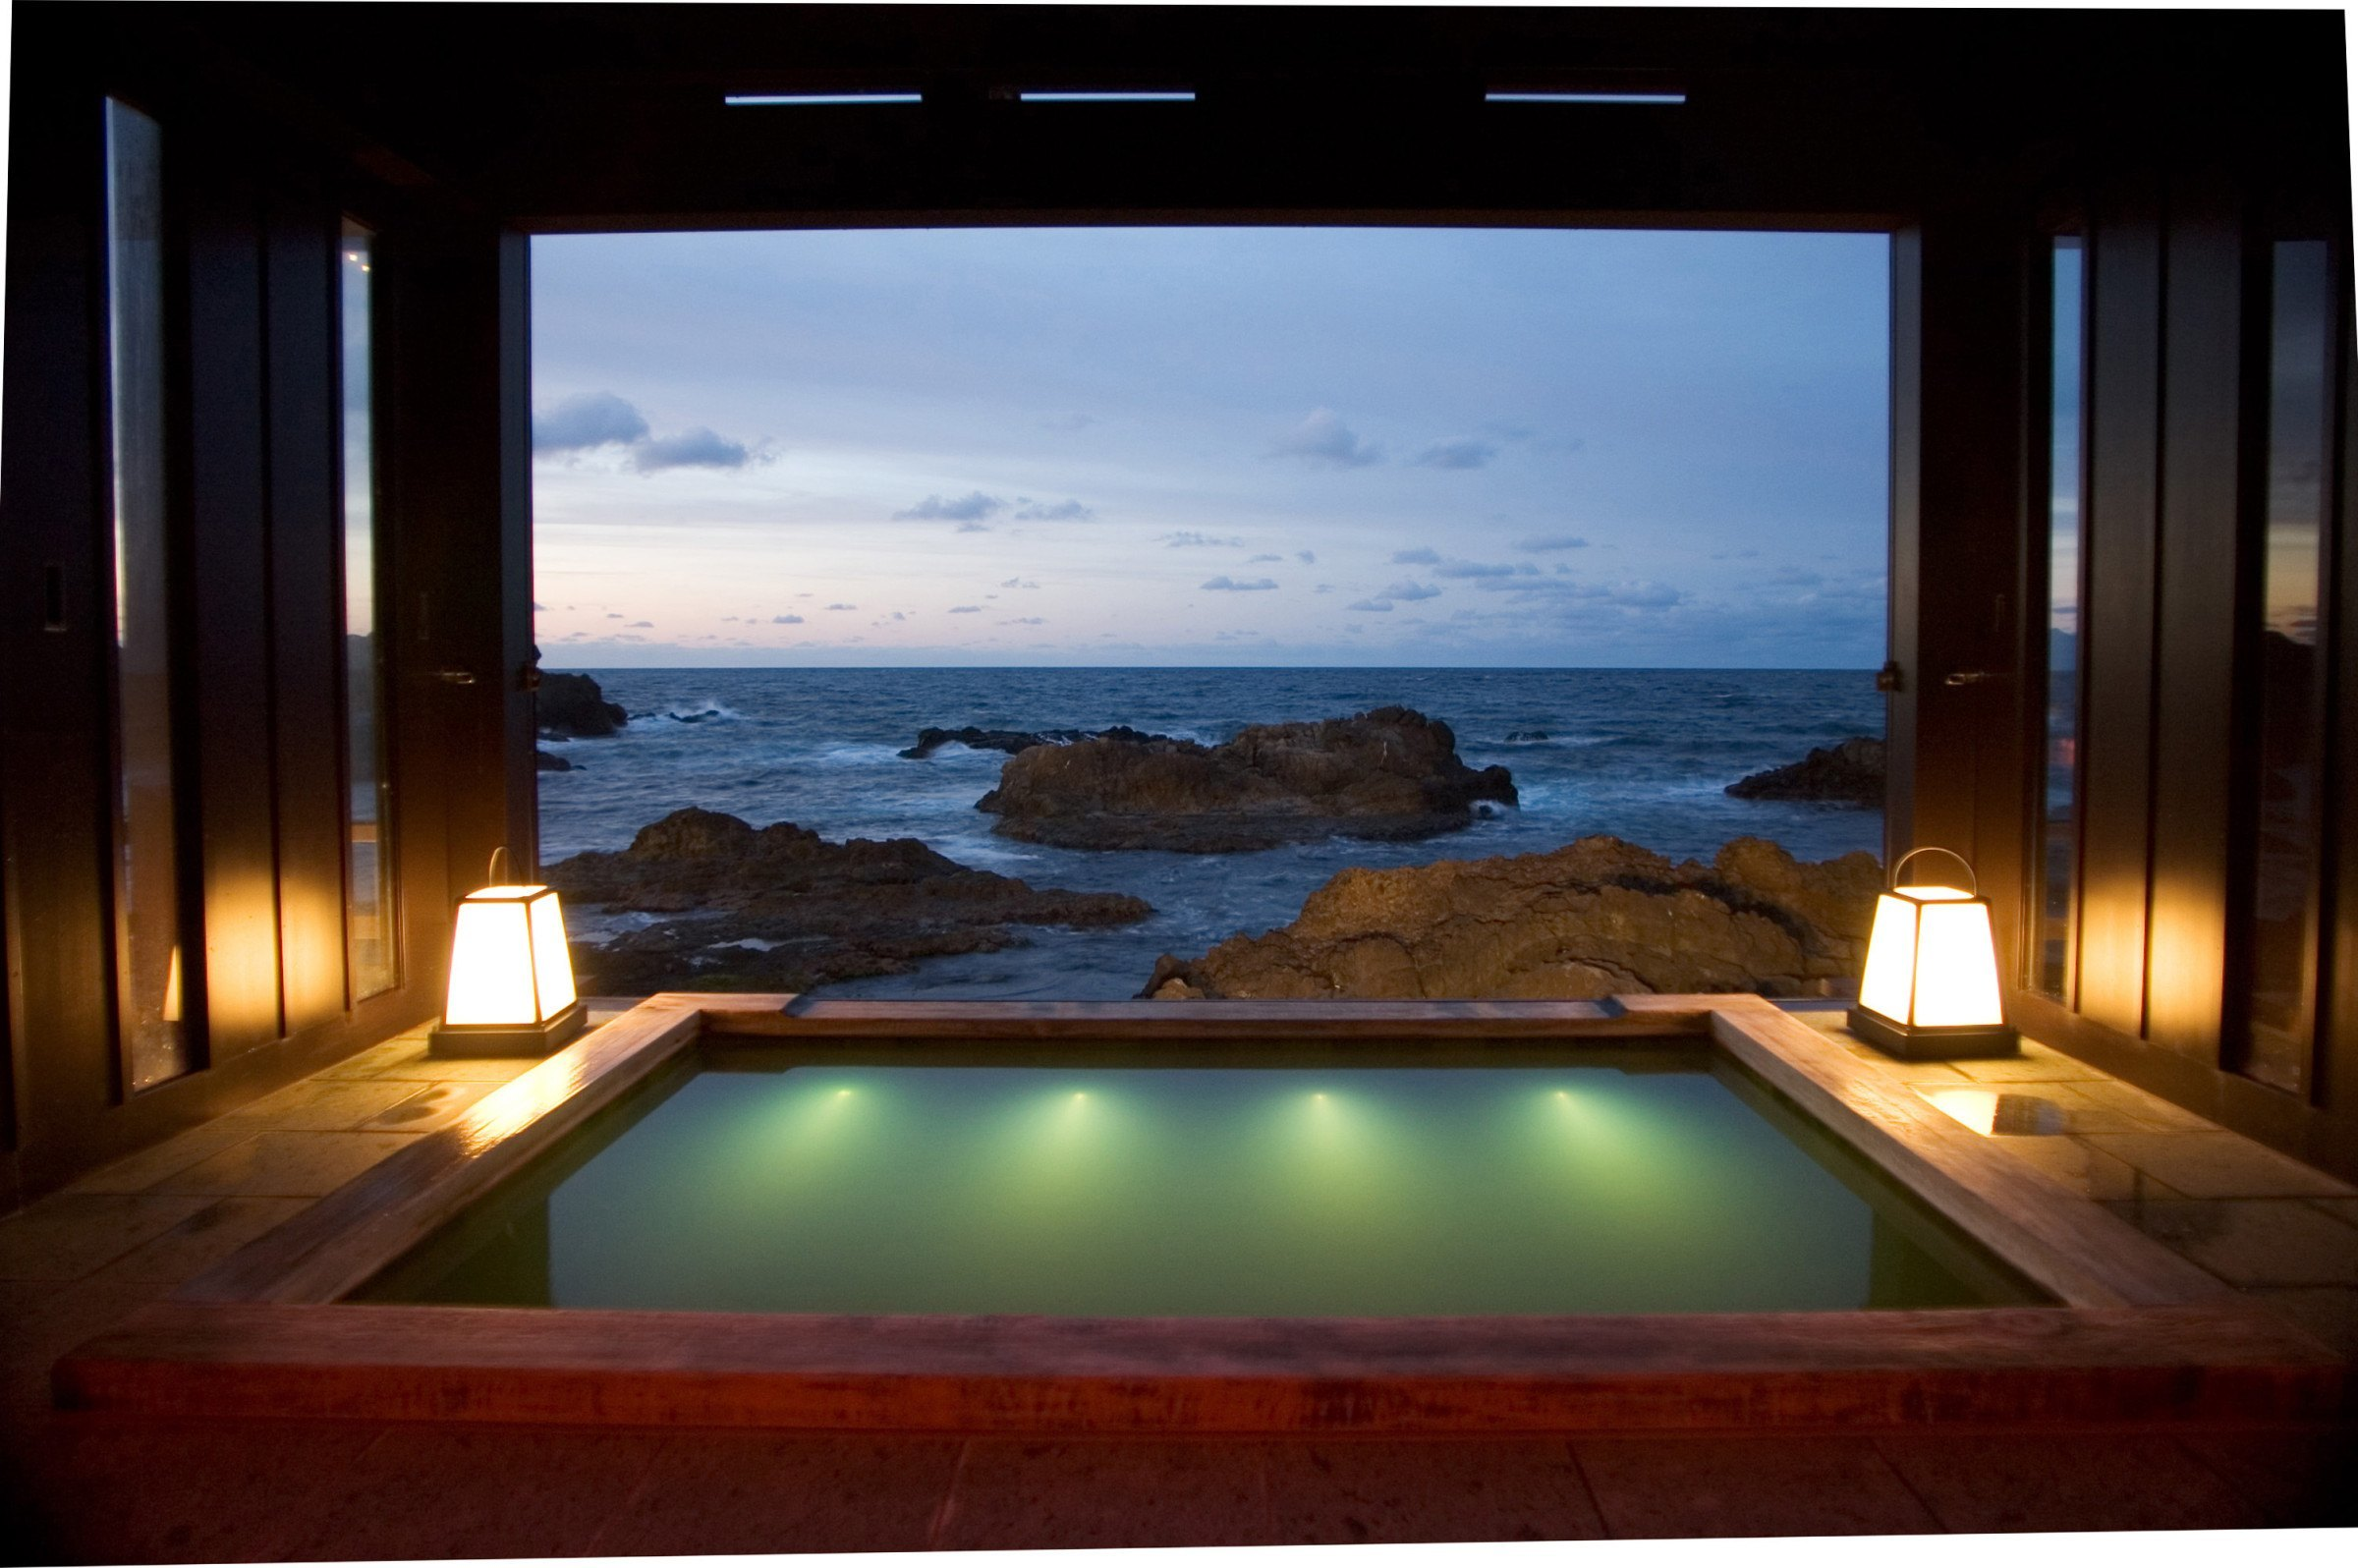 A hot spring bath overlooking the ocean at Lamp no Yado